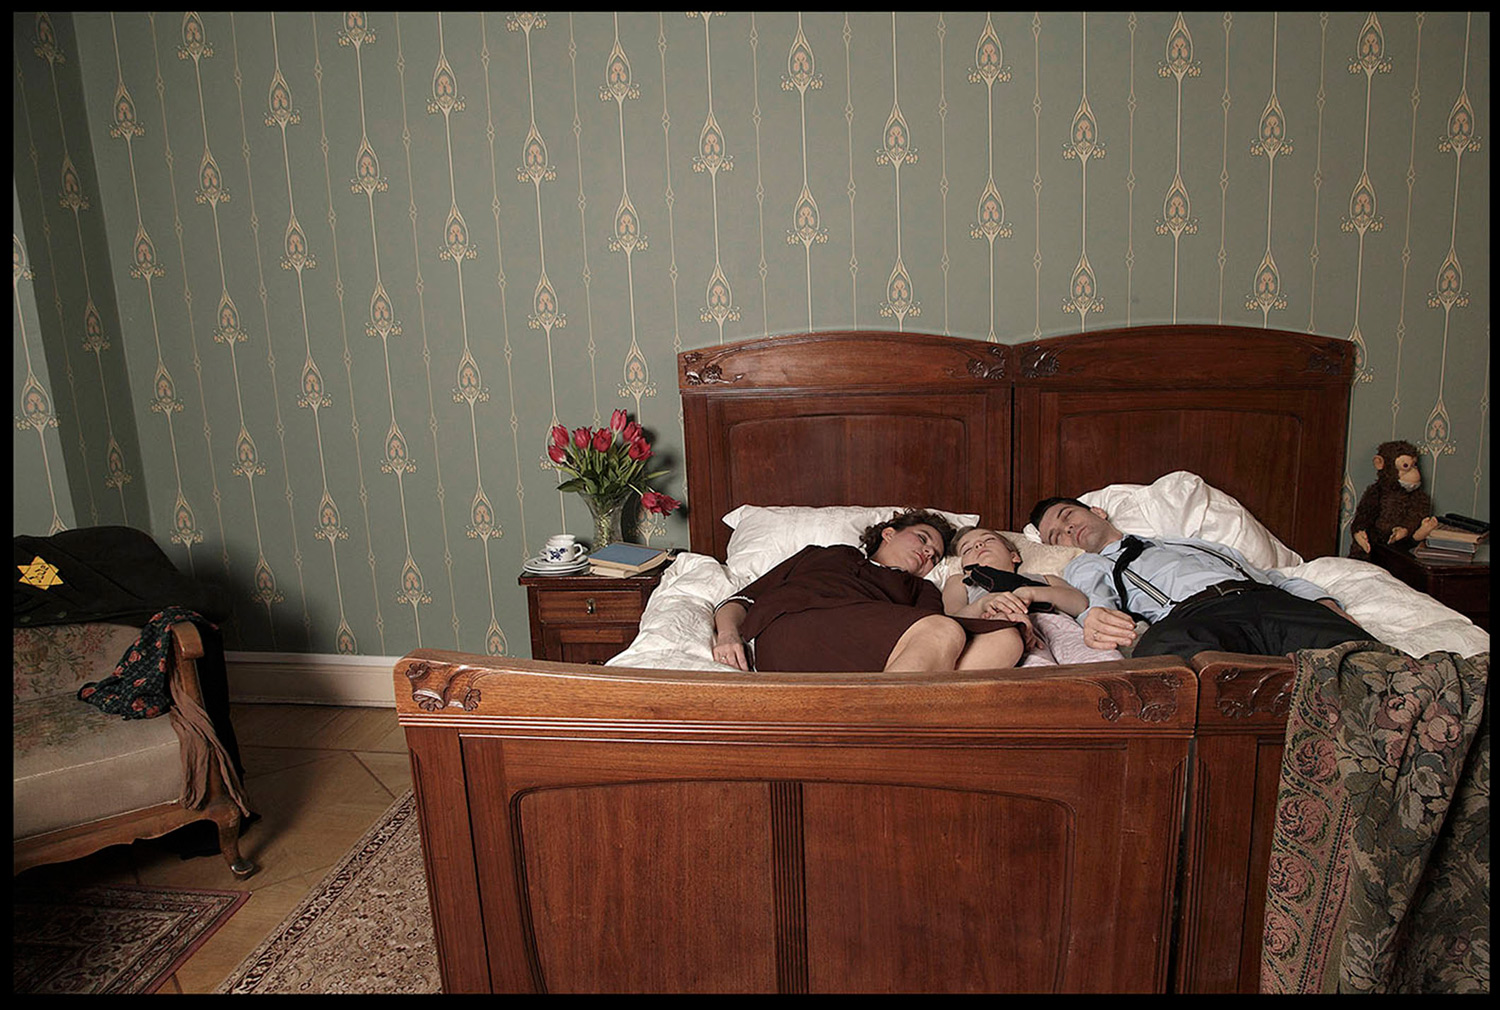 Claudia Reinhardt, Gottschalk out of Tomb Of Love, photo series 2013